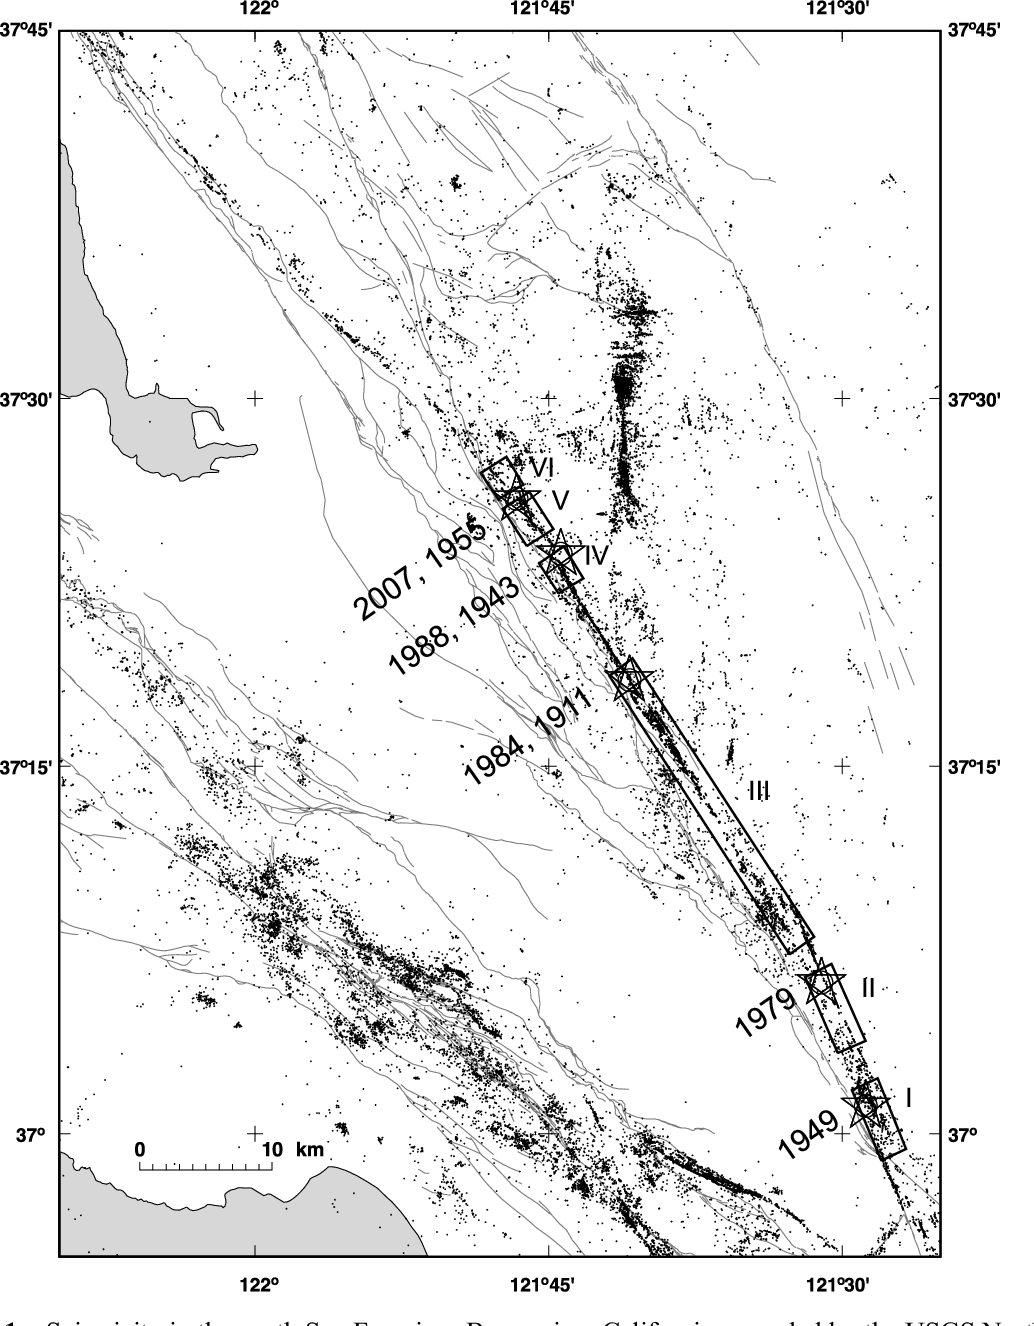 Figure 1 From The 2007 M5 4 Alum Rock California Earthquake Implications For Future Earthquakes On The Central And Southern Calaveras Fault Semantic Scholar